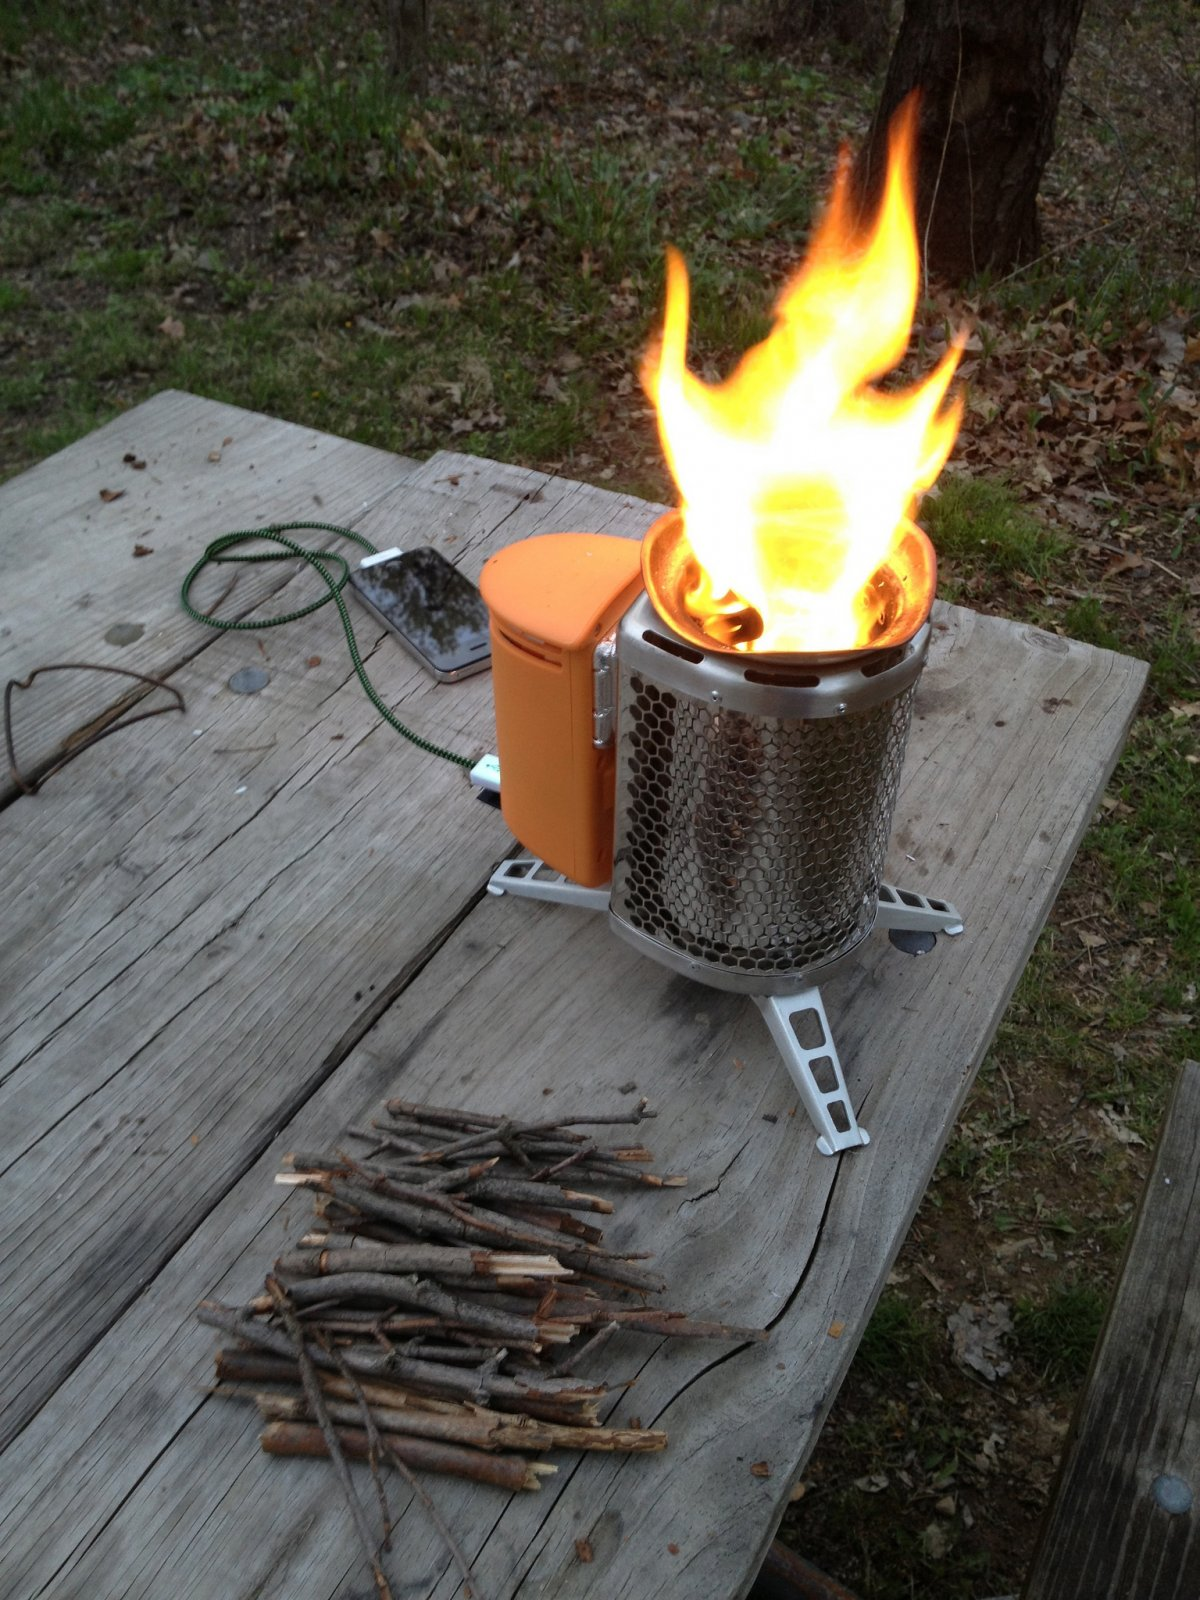 BioLite's camp stove reduces emissions by burning wood more efficiently